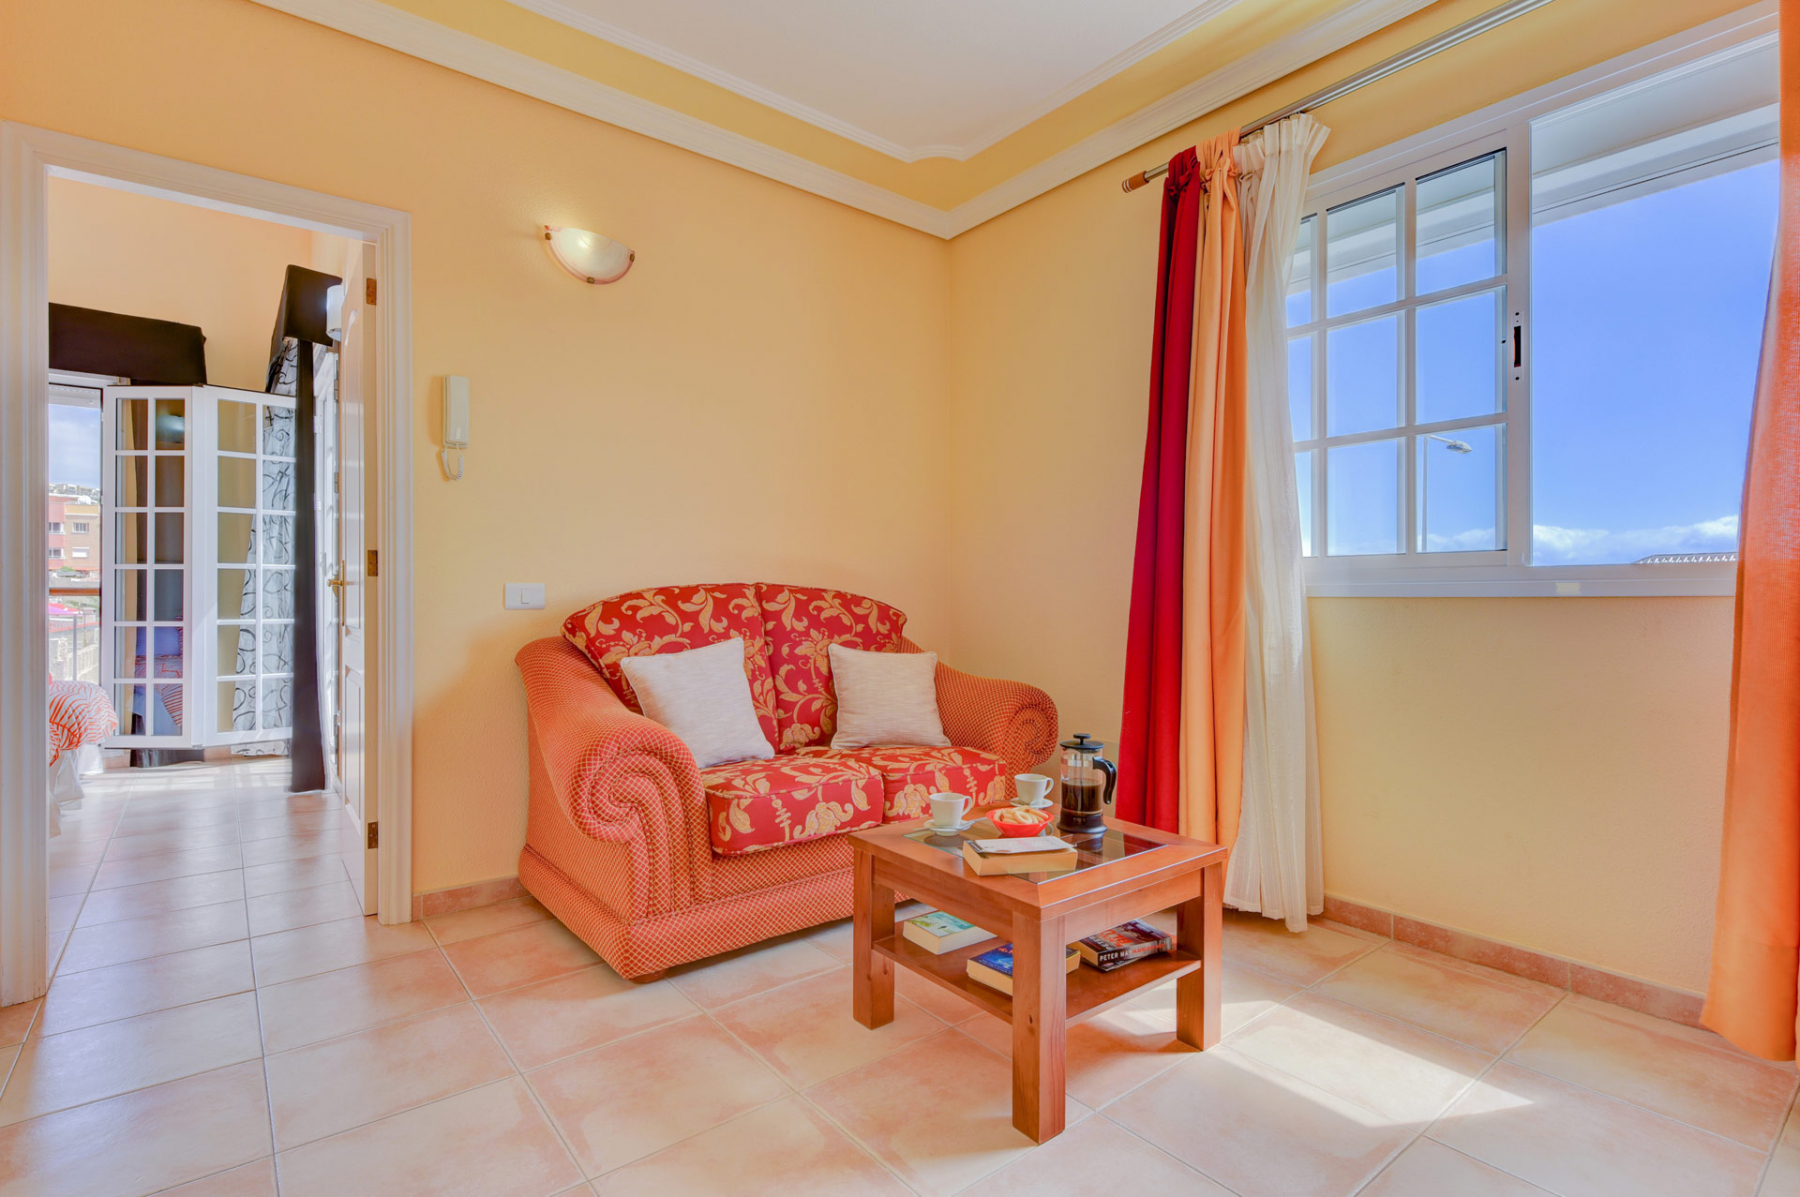 Properties for Sale in Tenerife, Canary Islands, Spain | SylkWayStar Real Estate. Villa 5 bedrooms Madroñal. Image-25097